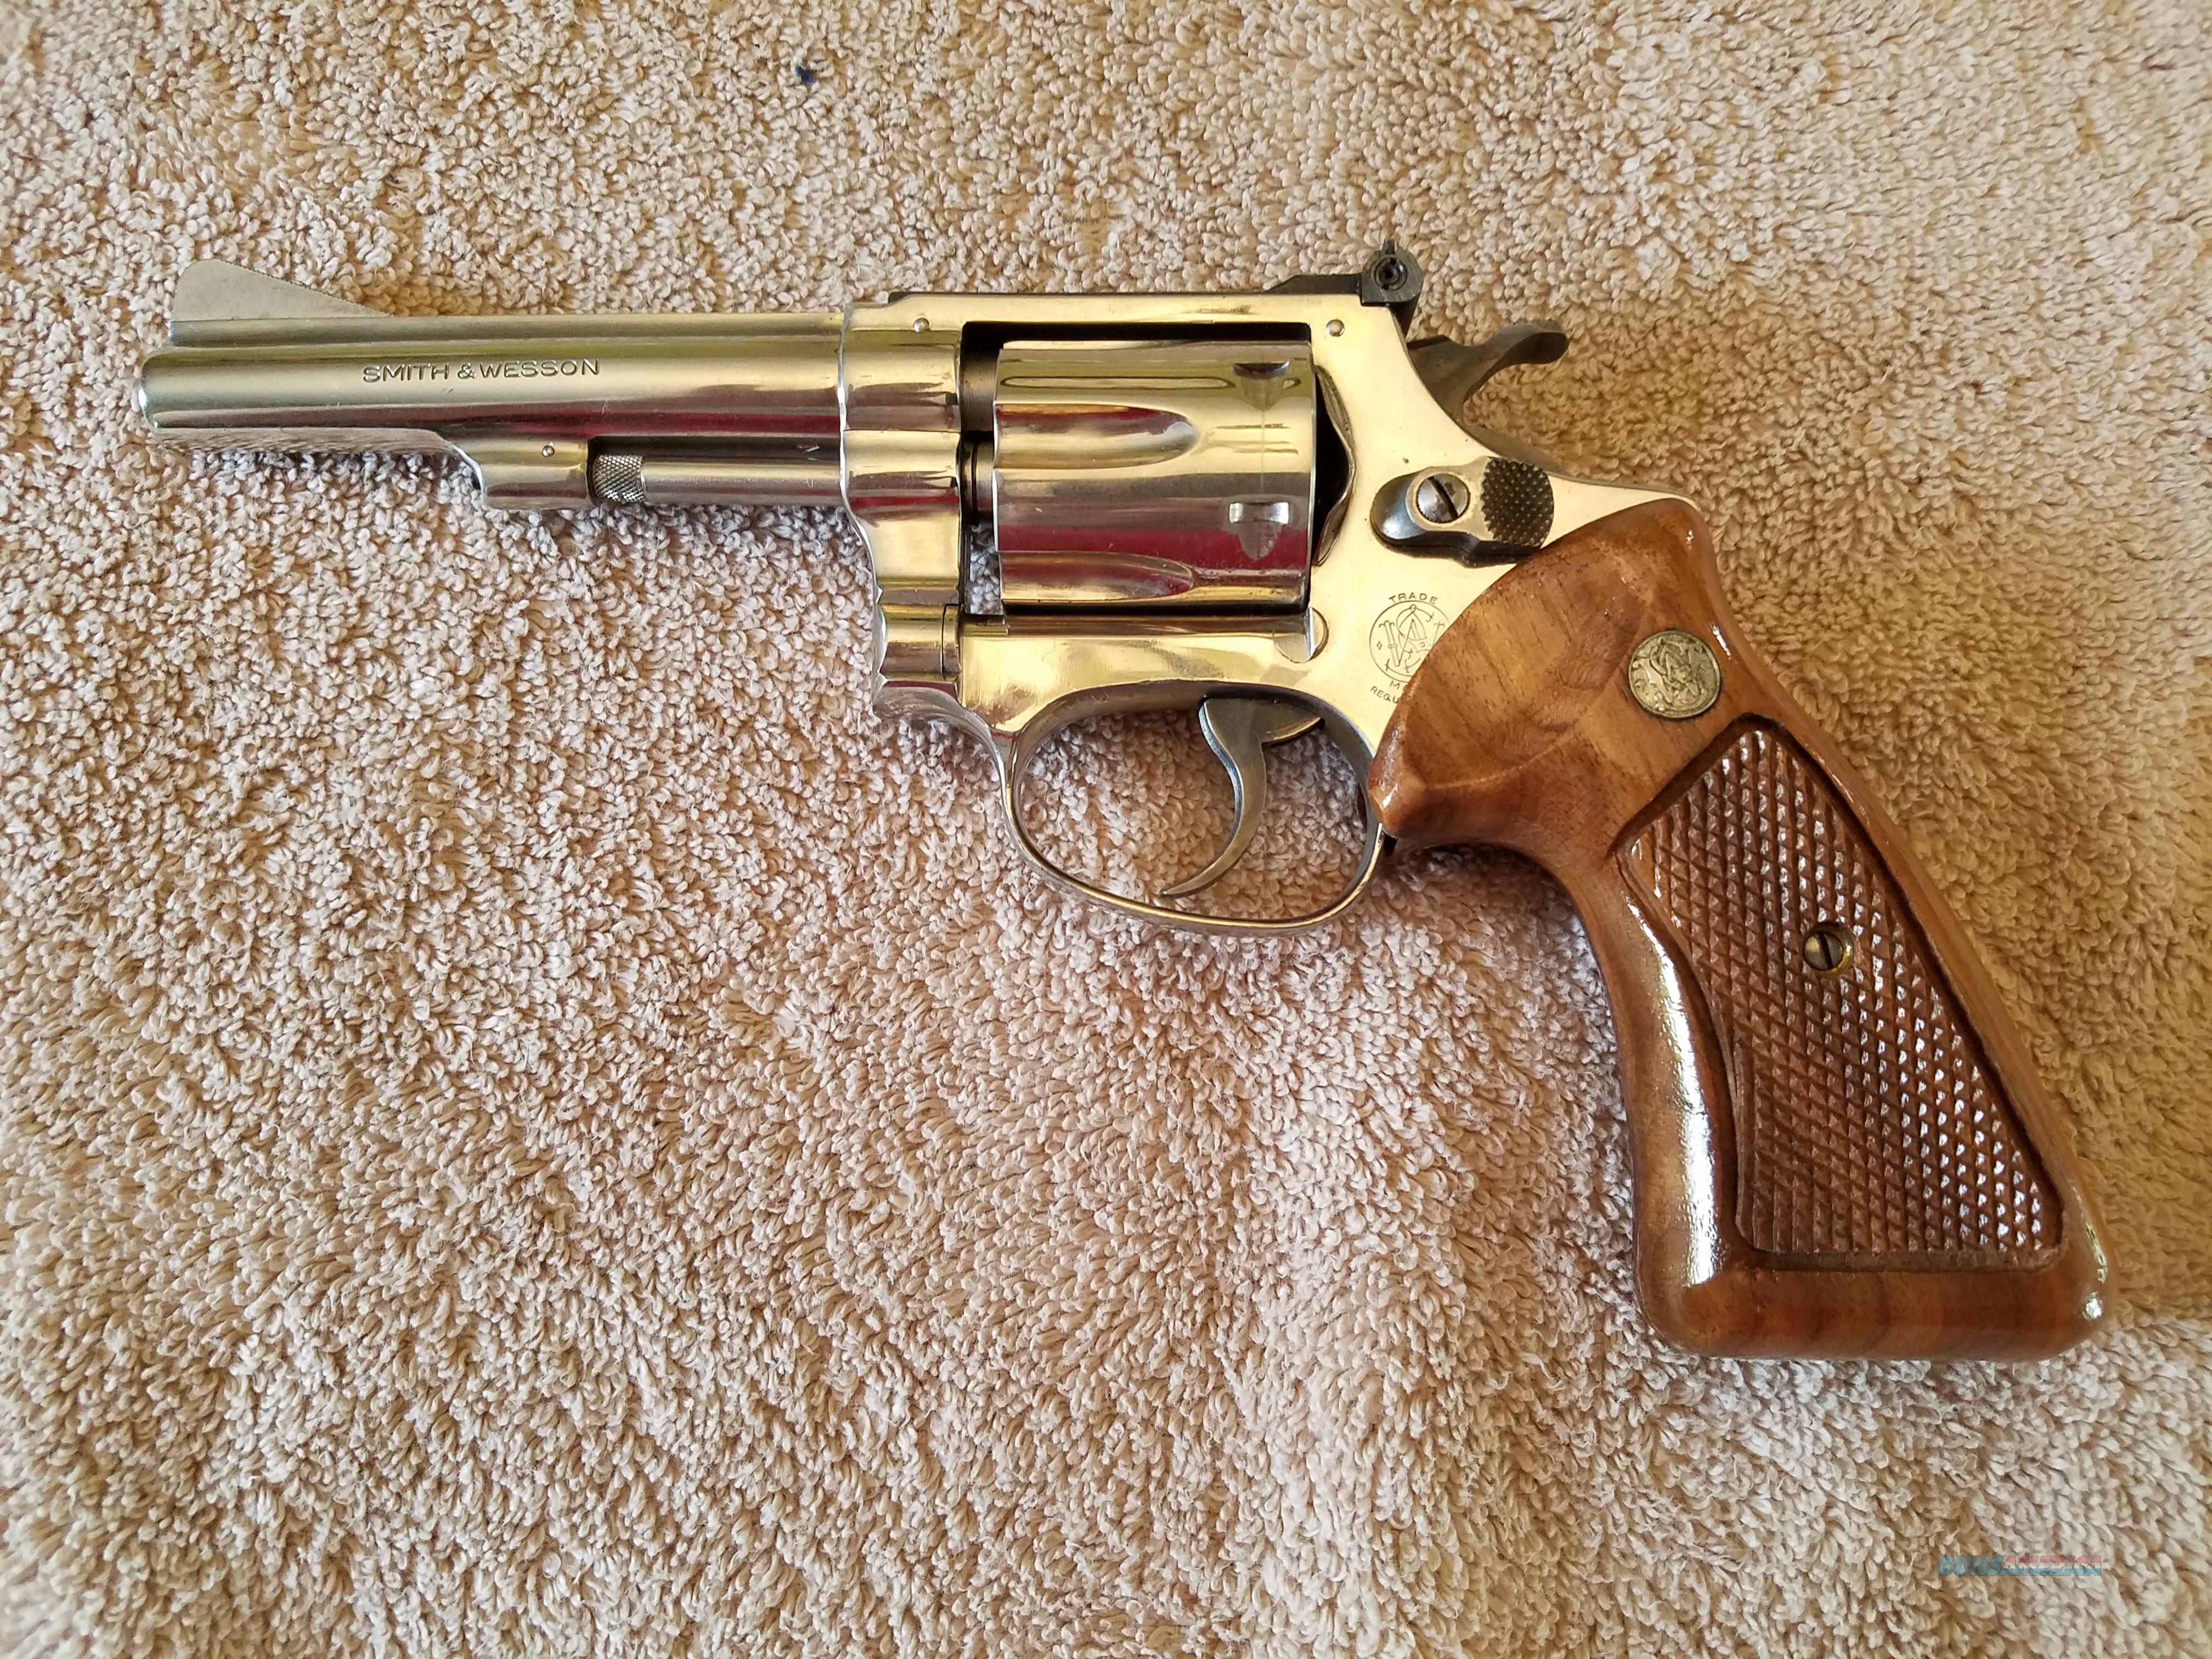 Smith & Wesson 34-1 Revolver 22 Long Rifle  Guns > Pistols > Smith & Wesson Revolvers > Full Frame Revolver